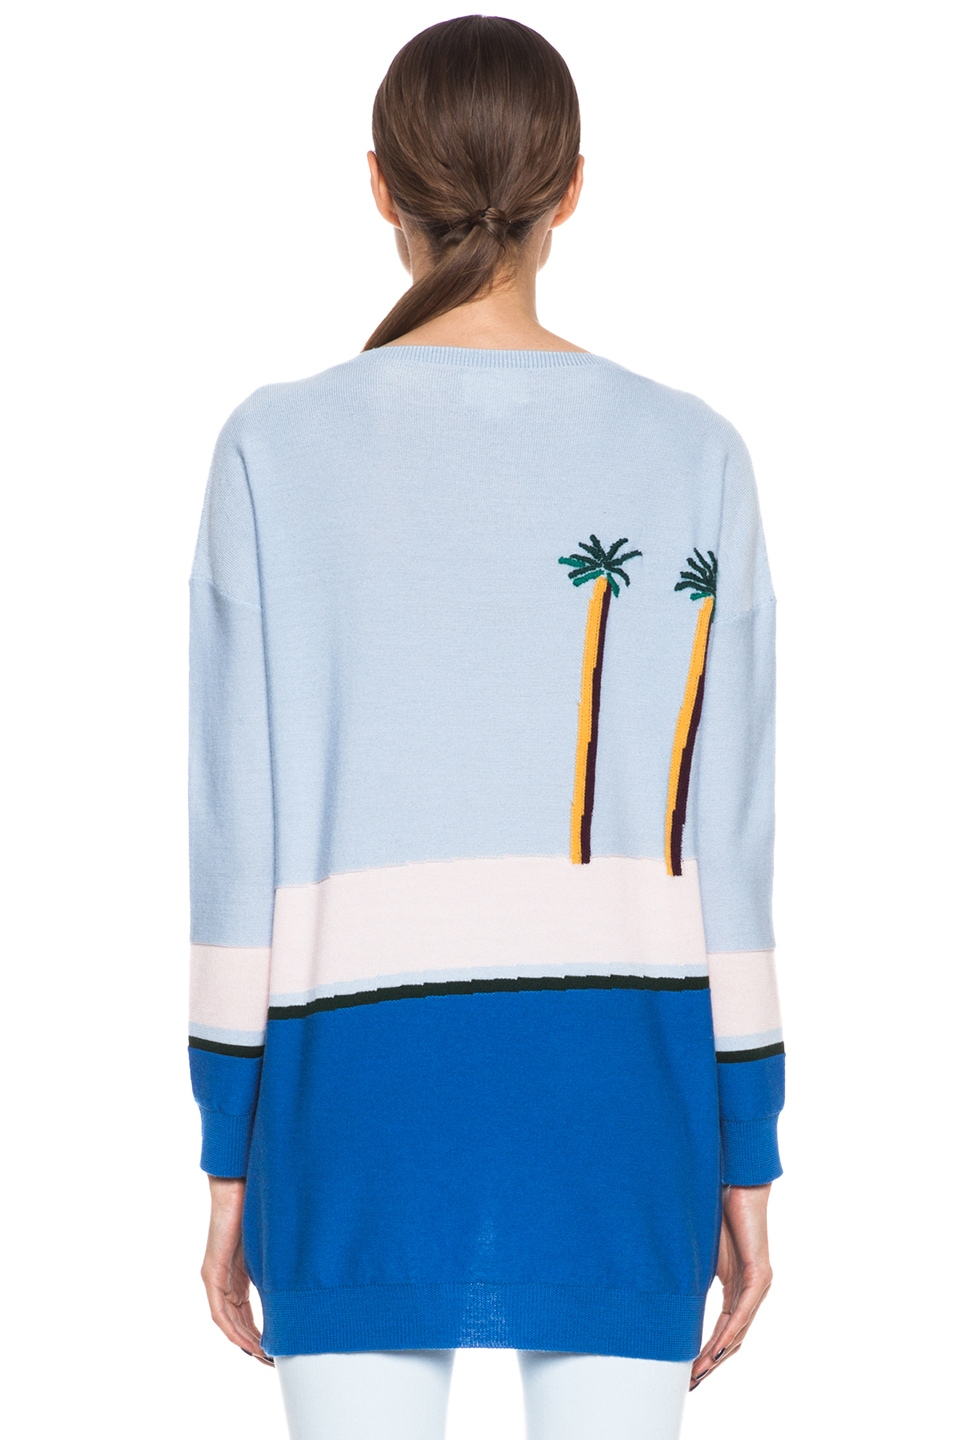 Image 4 of Band of Outsiders Pool Intarsia Merino Wool Sweater in Light Blue